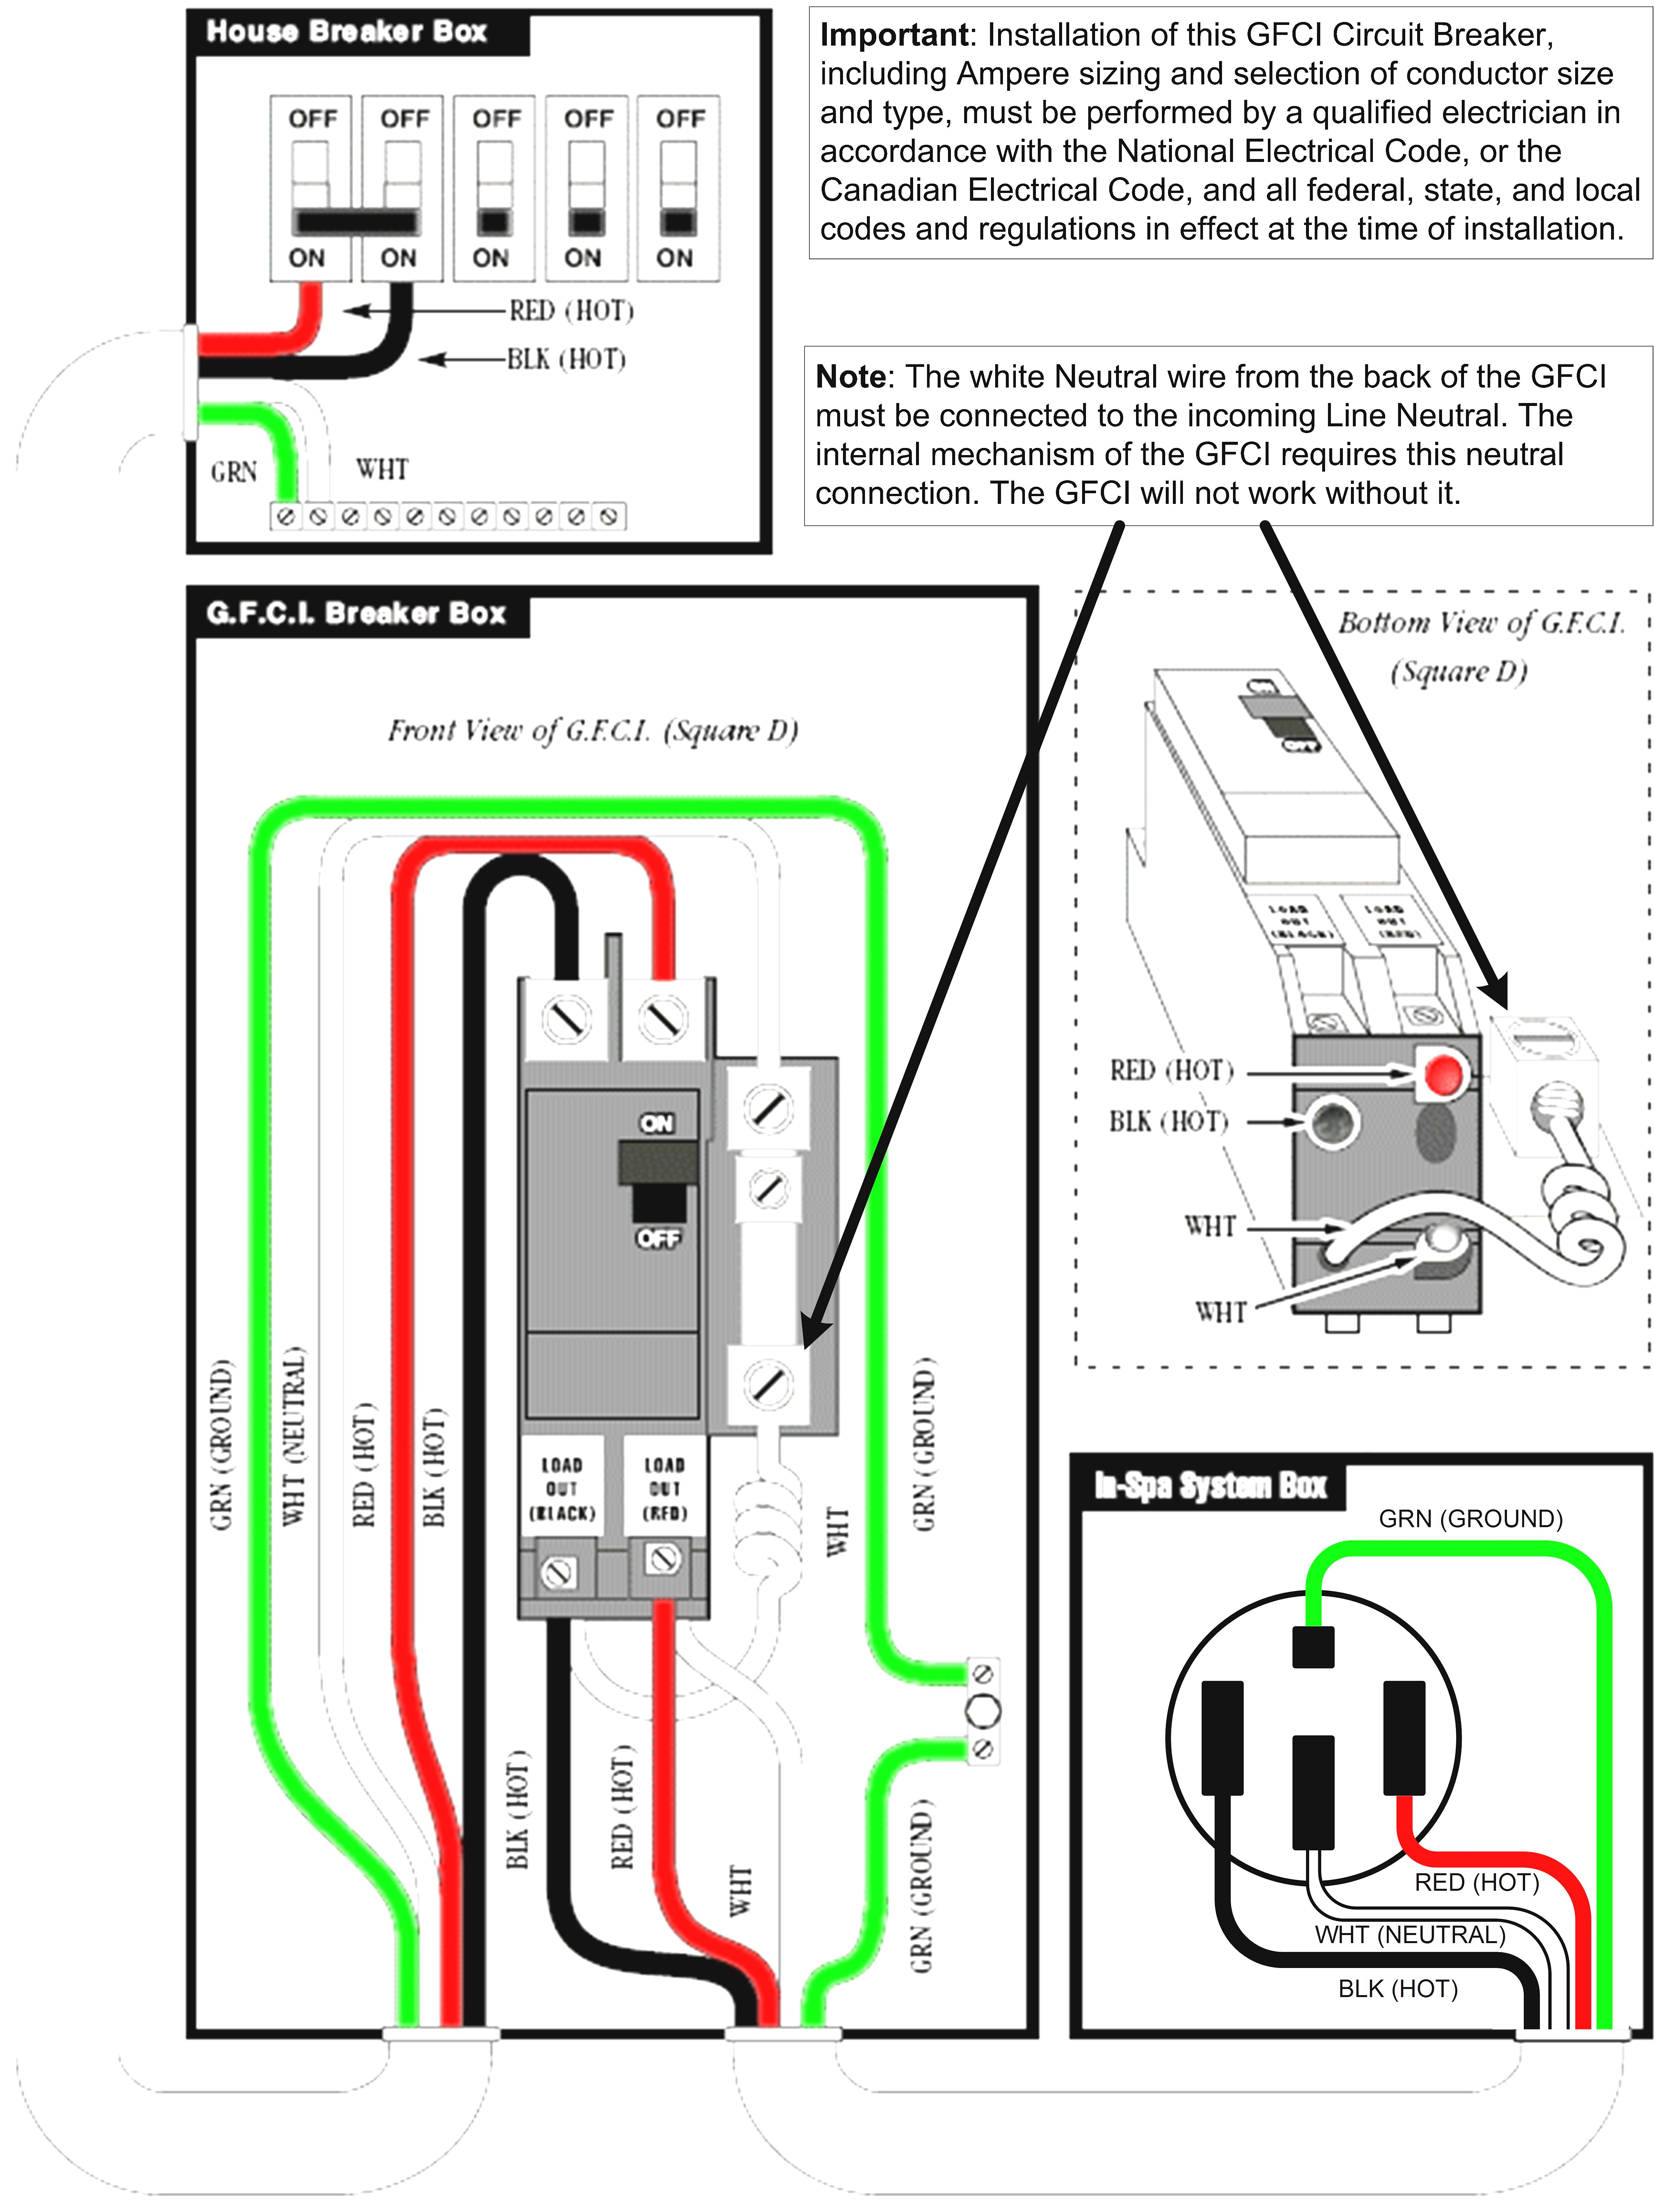 Gfci Breaker Wiring Diagram Simple Wiring Diagram Gfci Breaker New Gfci Circuit Drawing Wiring Diagram